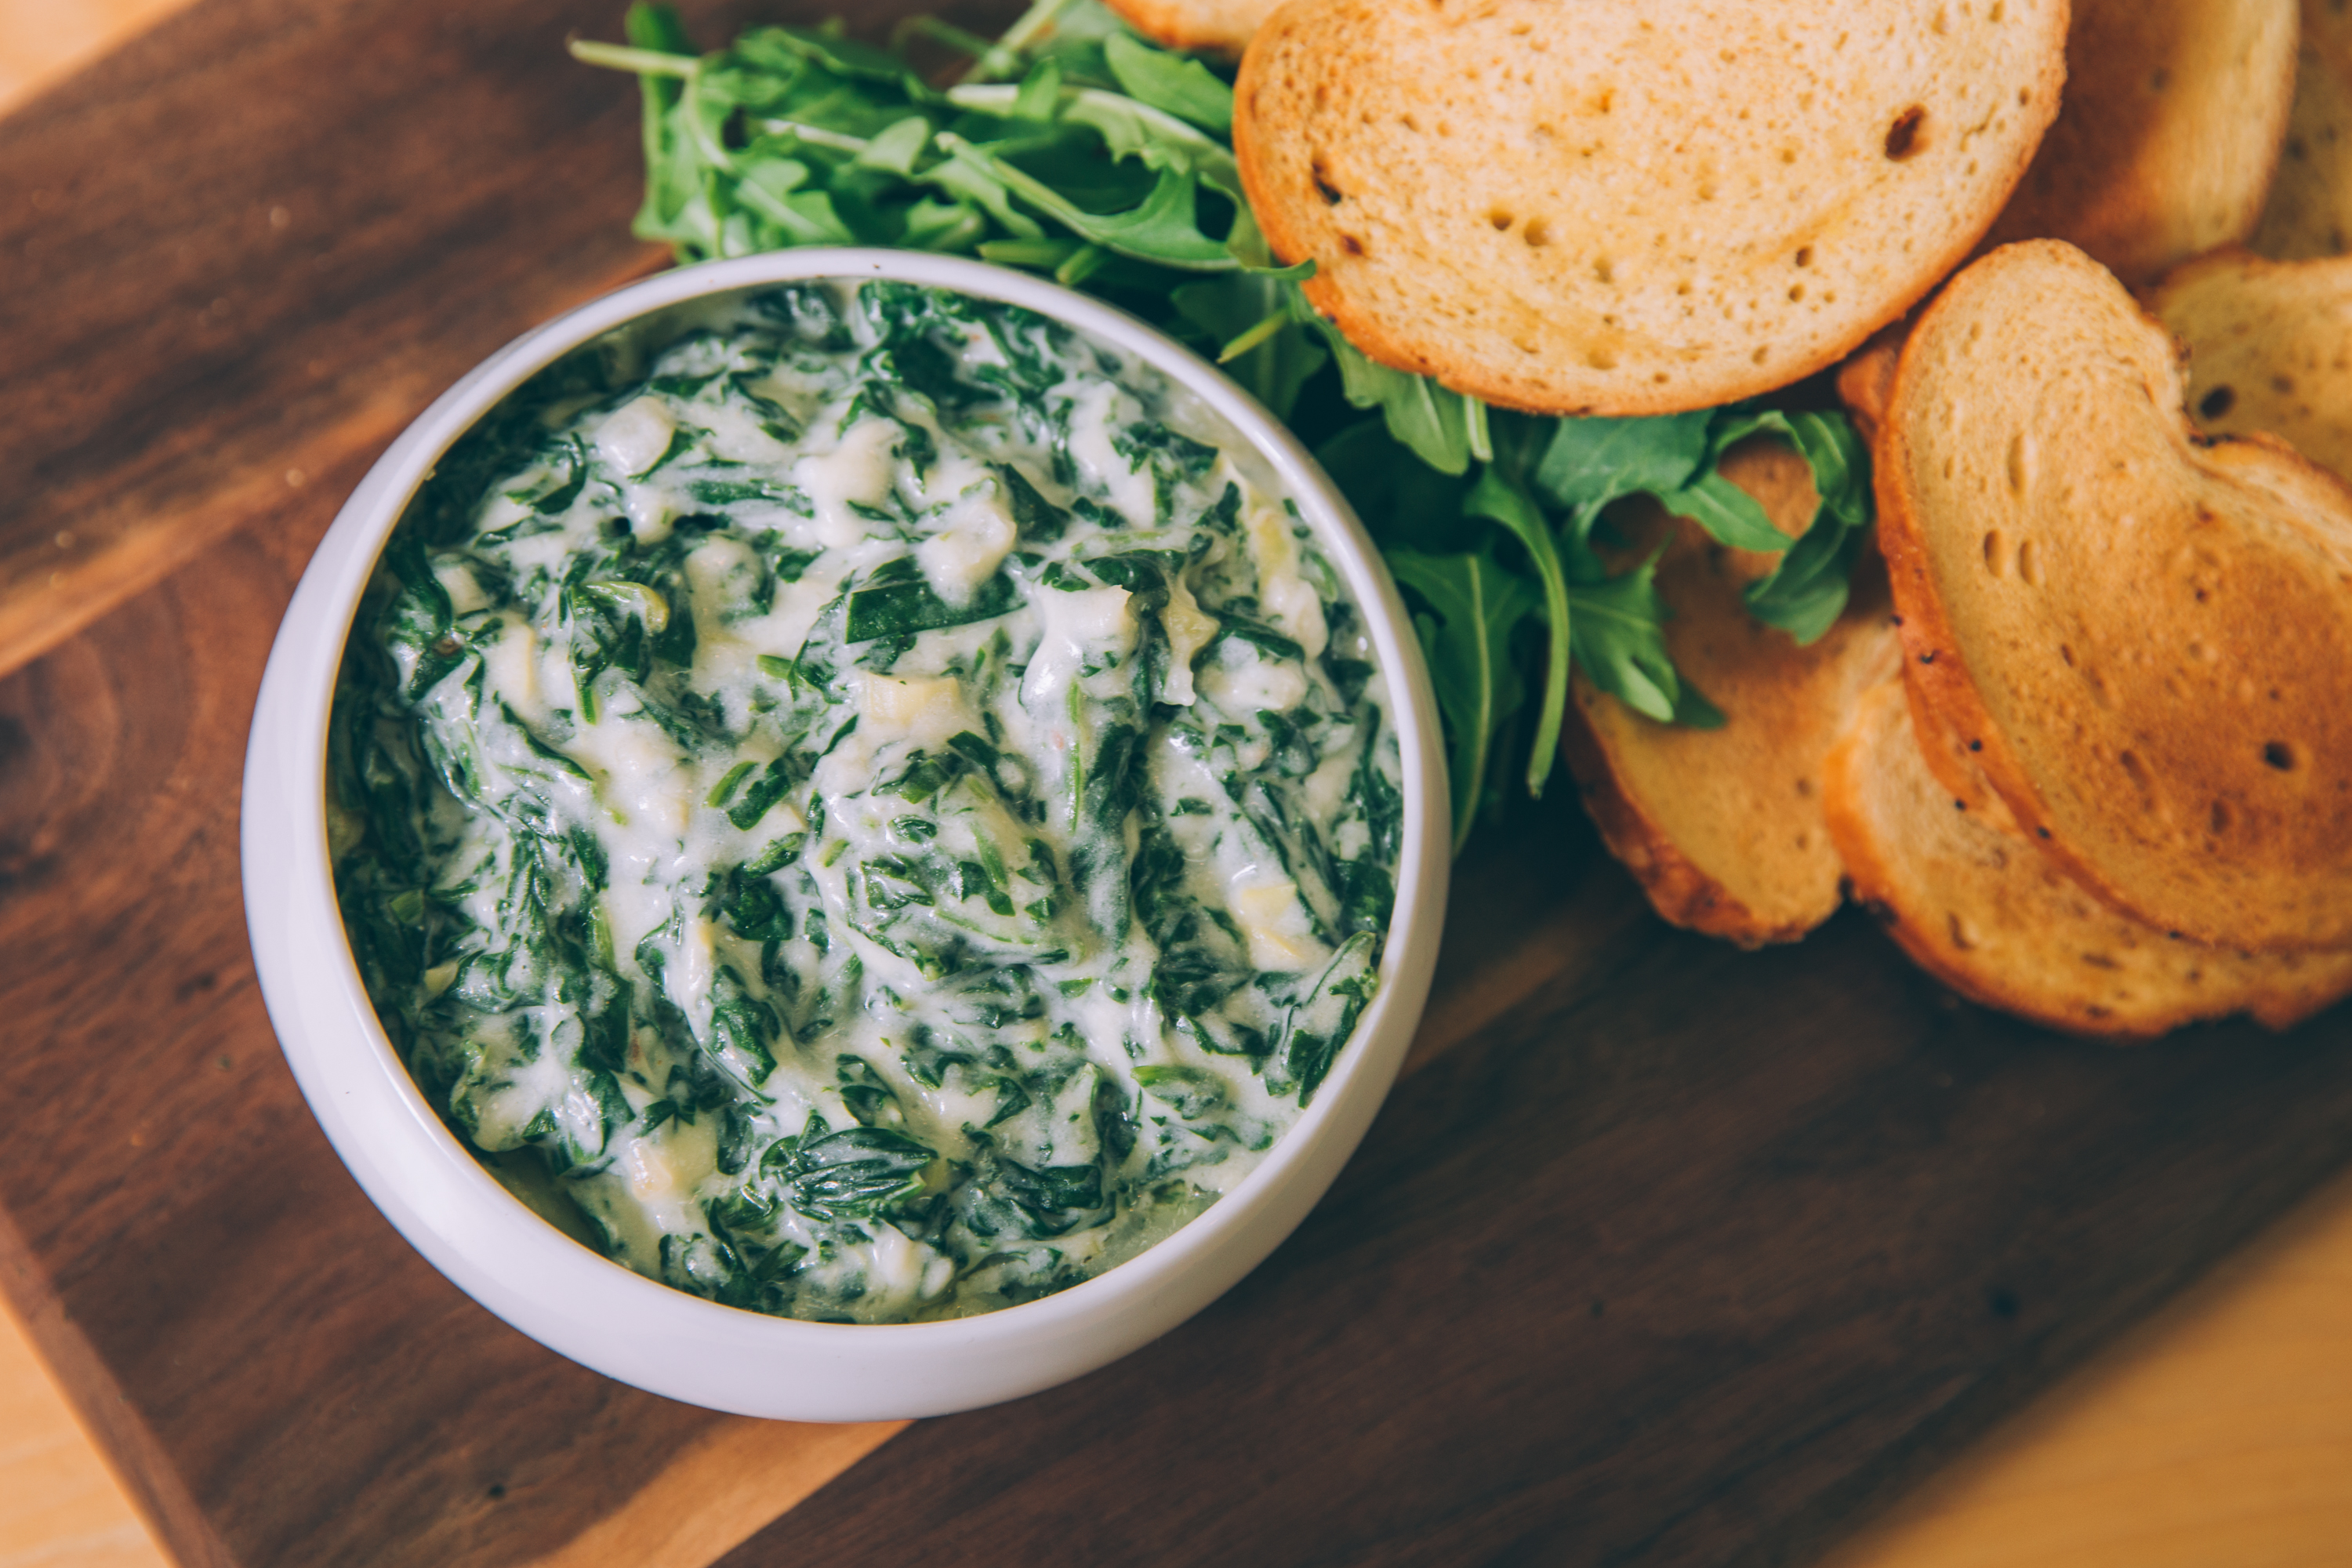 Spinach and artichoke fondue dip with toasted bread - appetizers for awards season